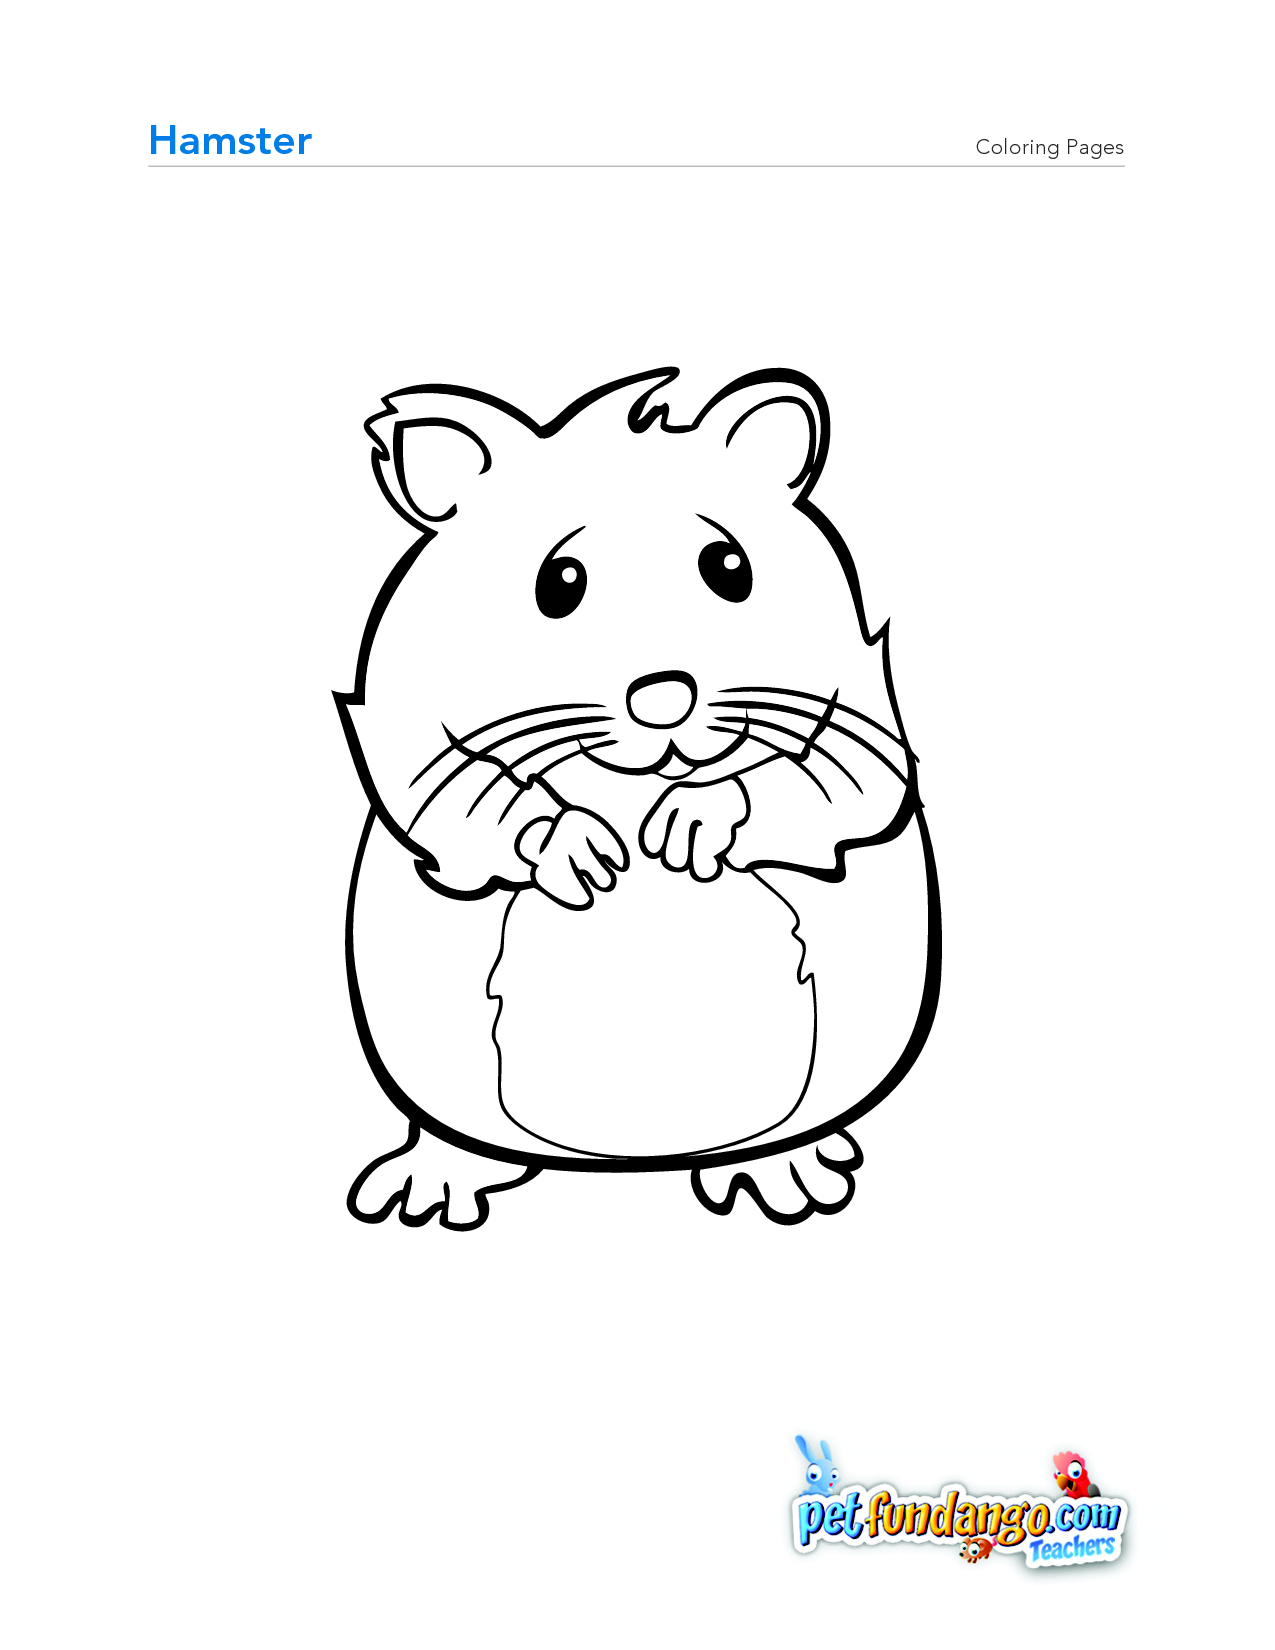 Hamster Coloring Page | OSOB | Coloring sheets for kids ...